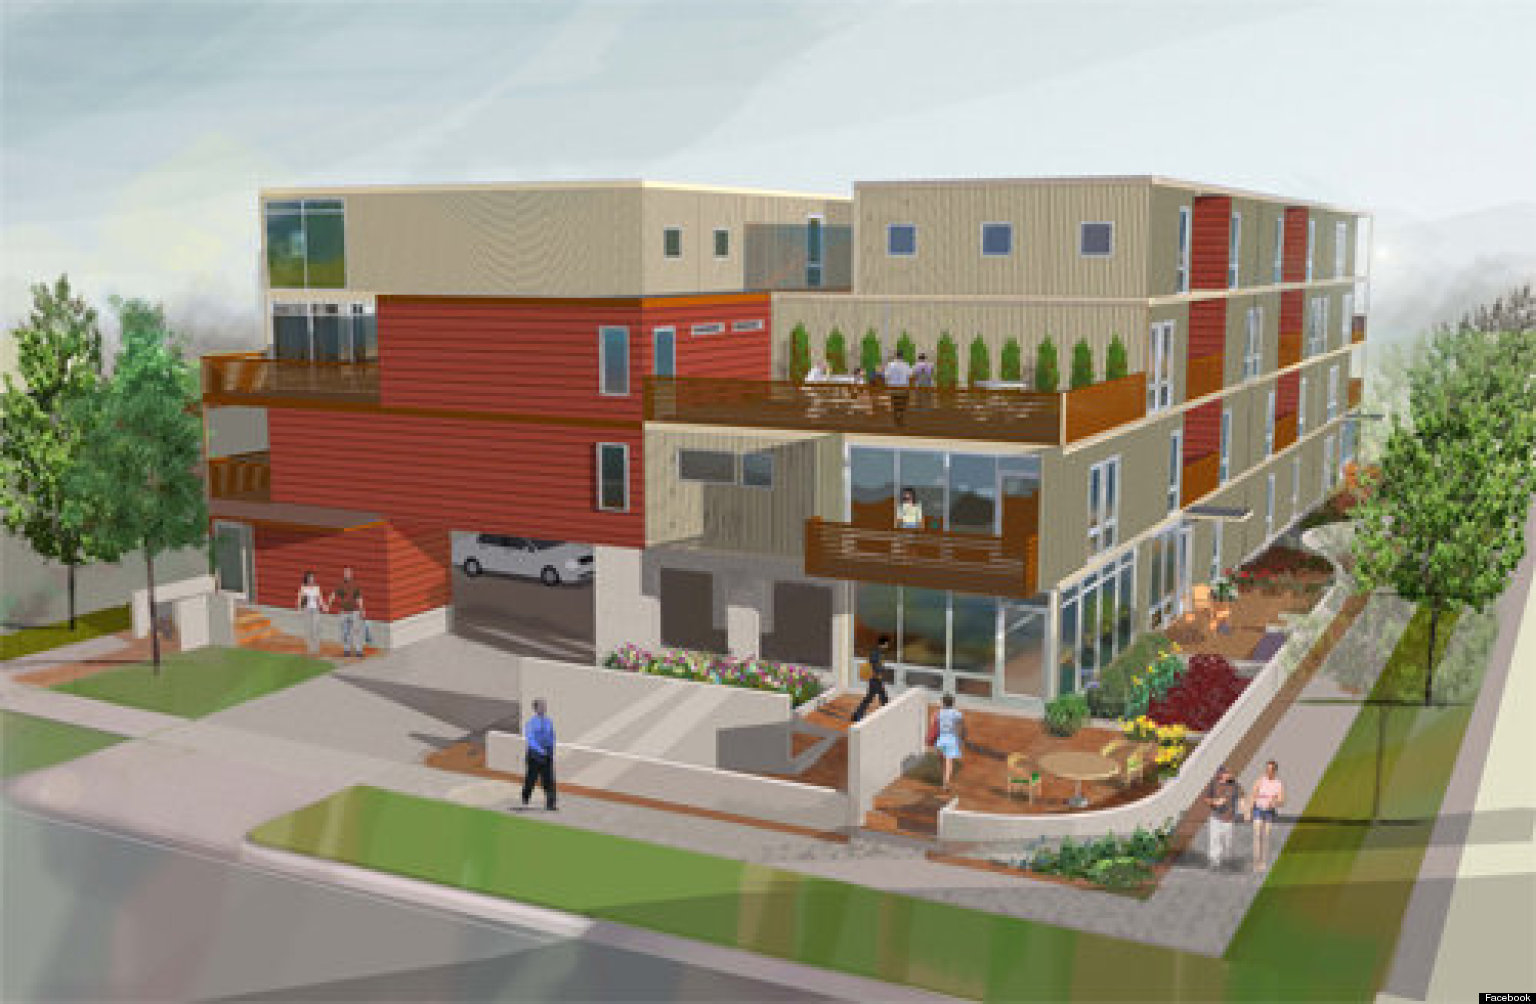 detroit shipping container condos in development for 2013 | huffpost